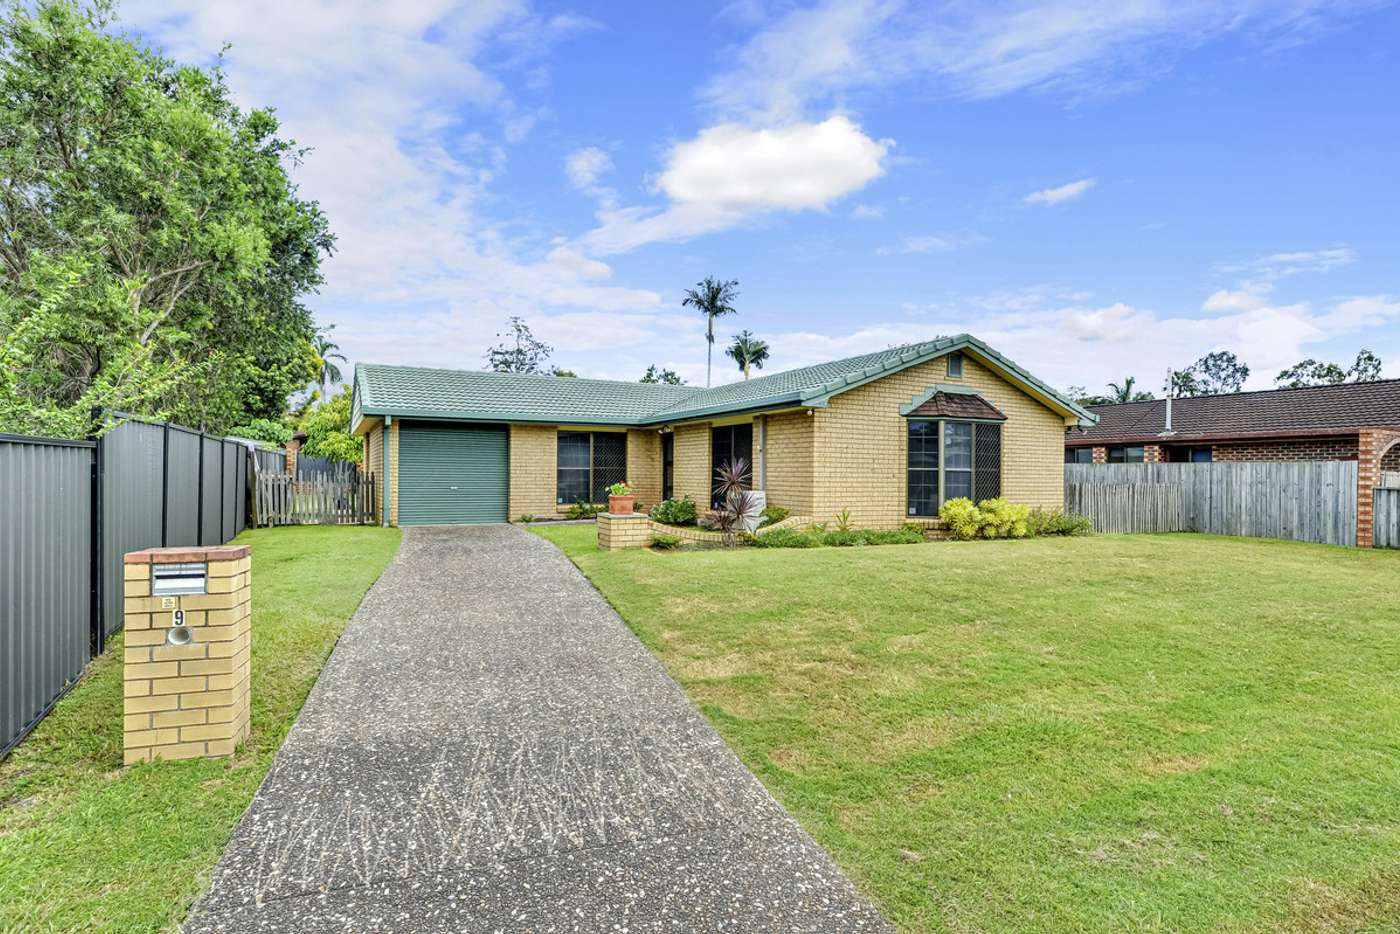 Main view of Homely house listing, 9 Eumong Street, Middle Park QLD 4074